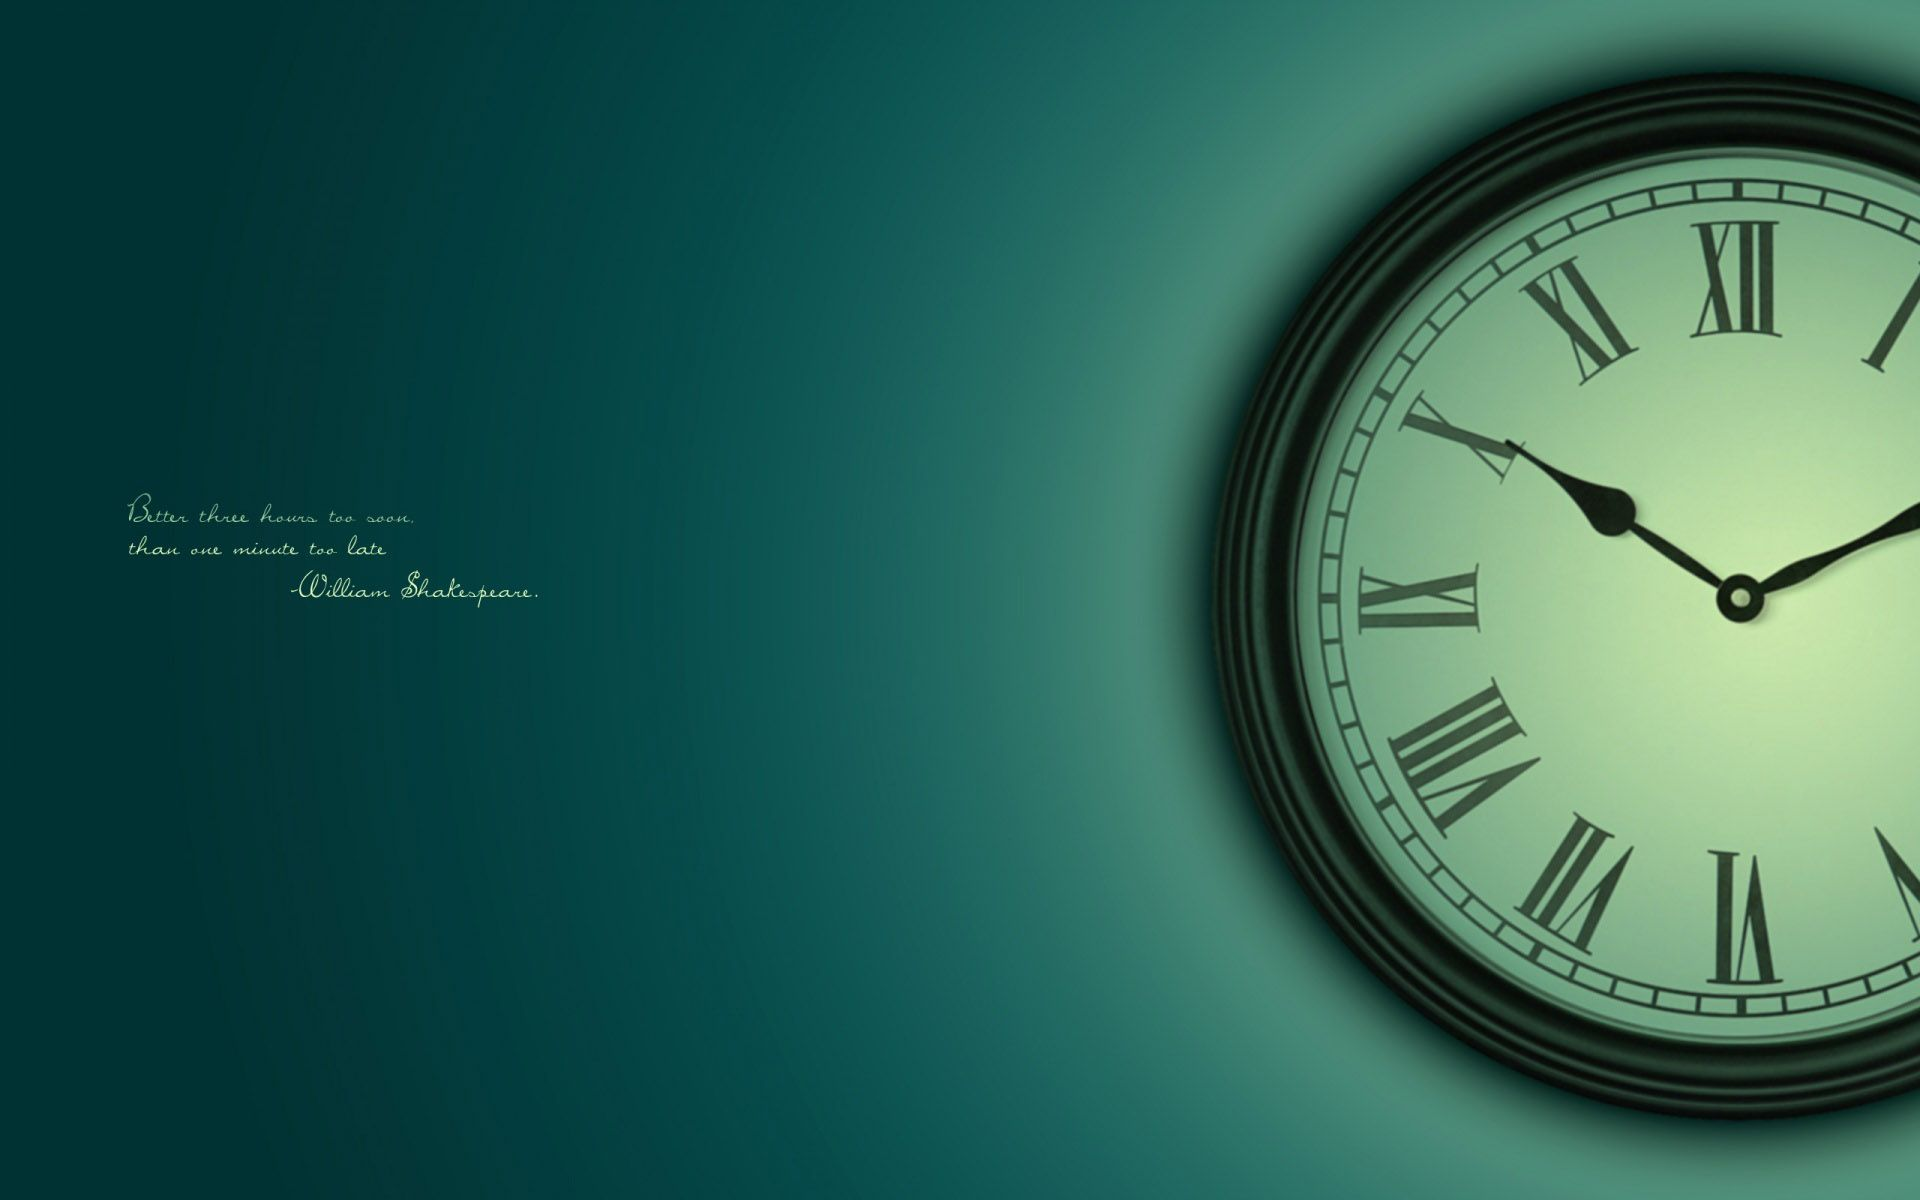 Clock And Quotes Hd Wallpaper For More Wallpapers Onlybackground Net